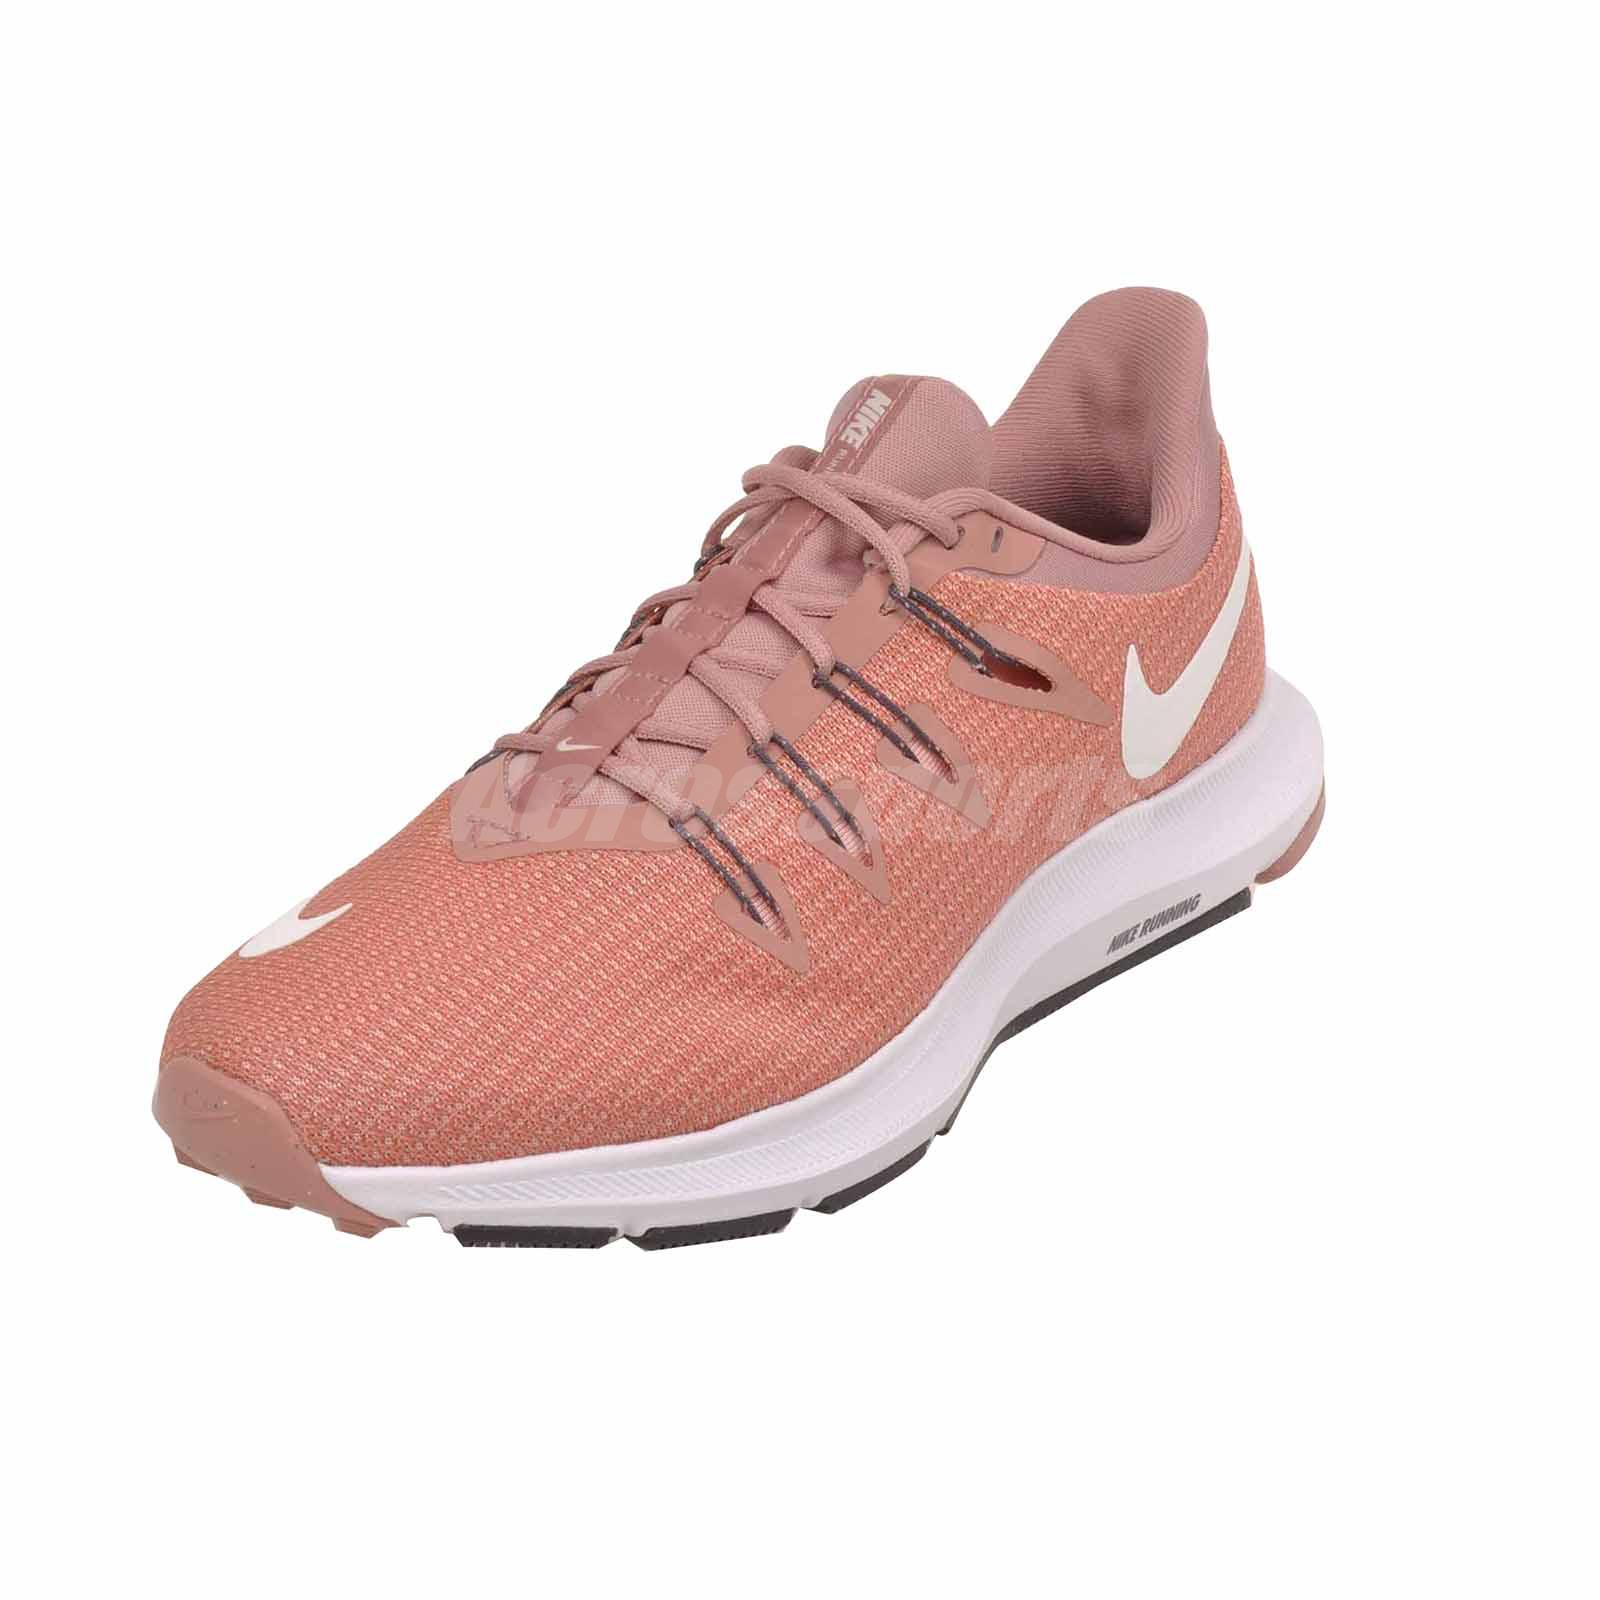 d5ae5a07549c0 Details about Nike Wmns Quest Running Womens Shoes Rust Pink AA7412-600